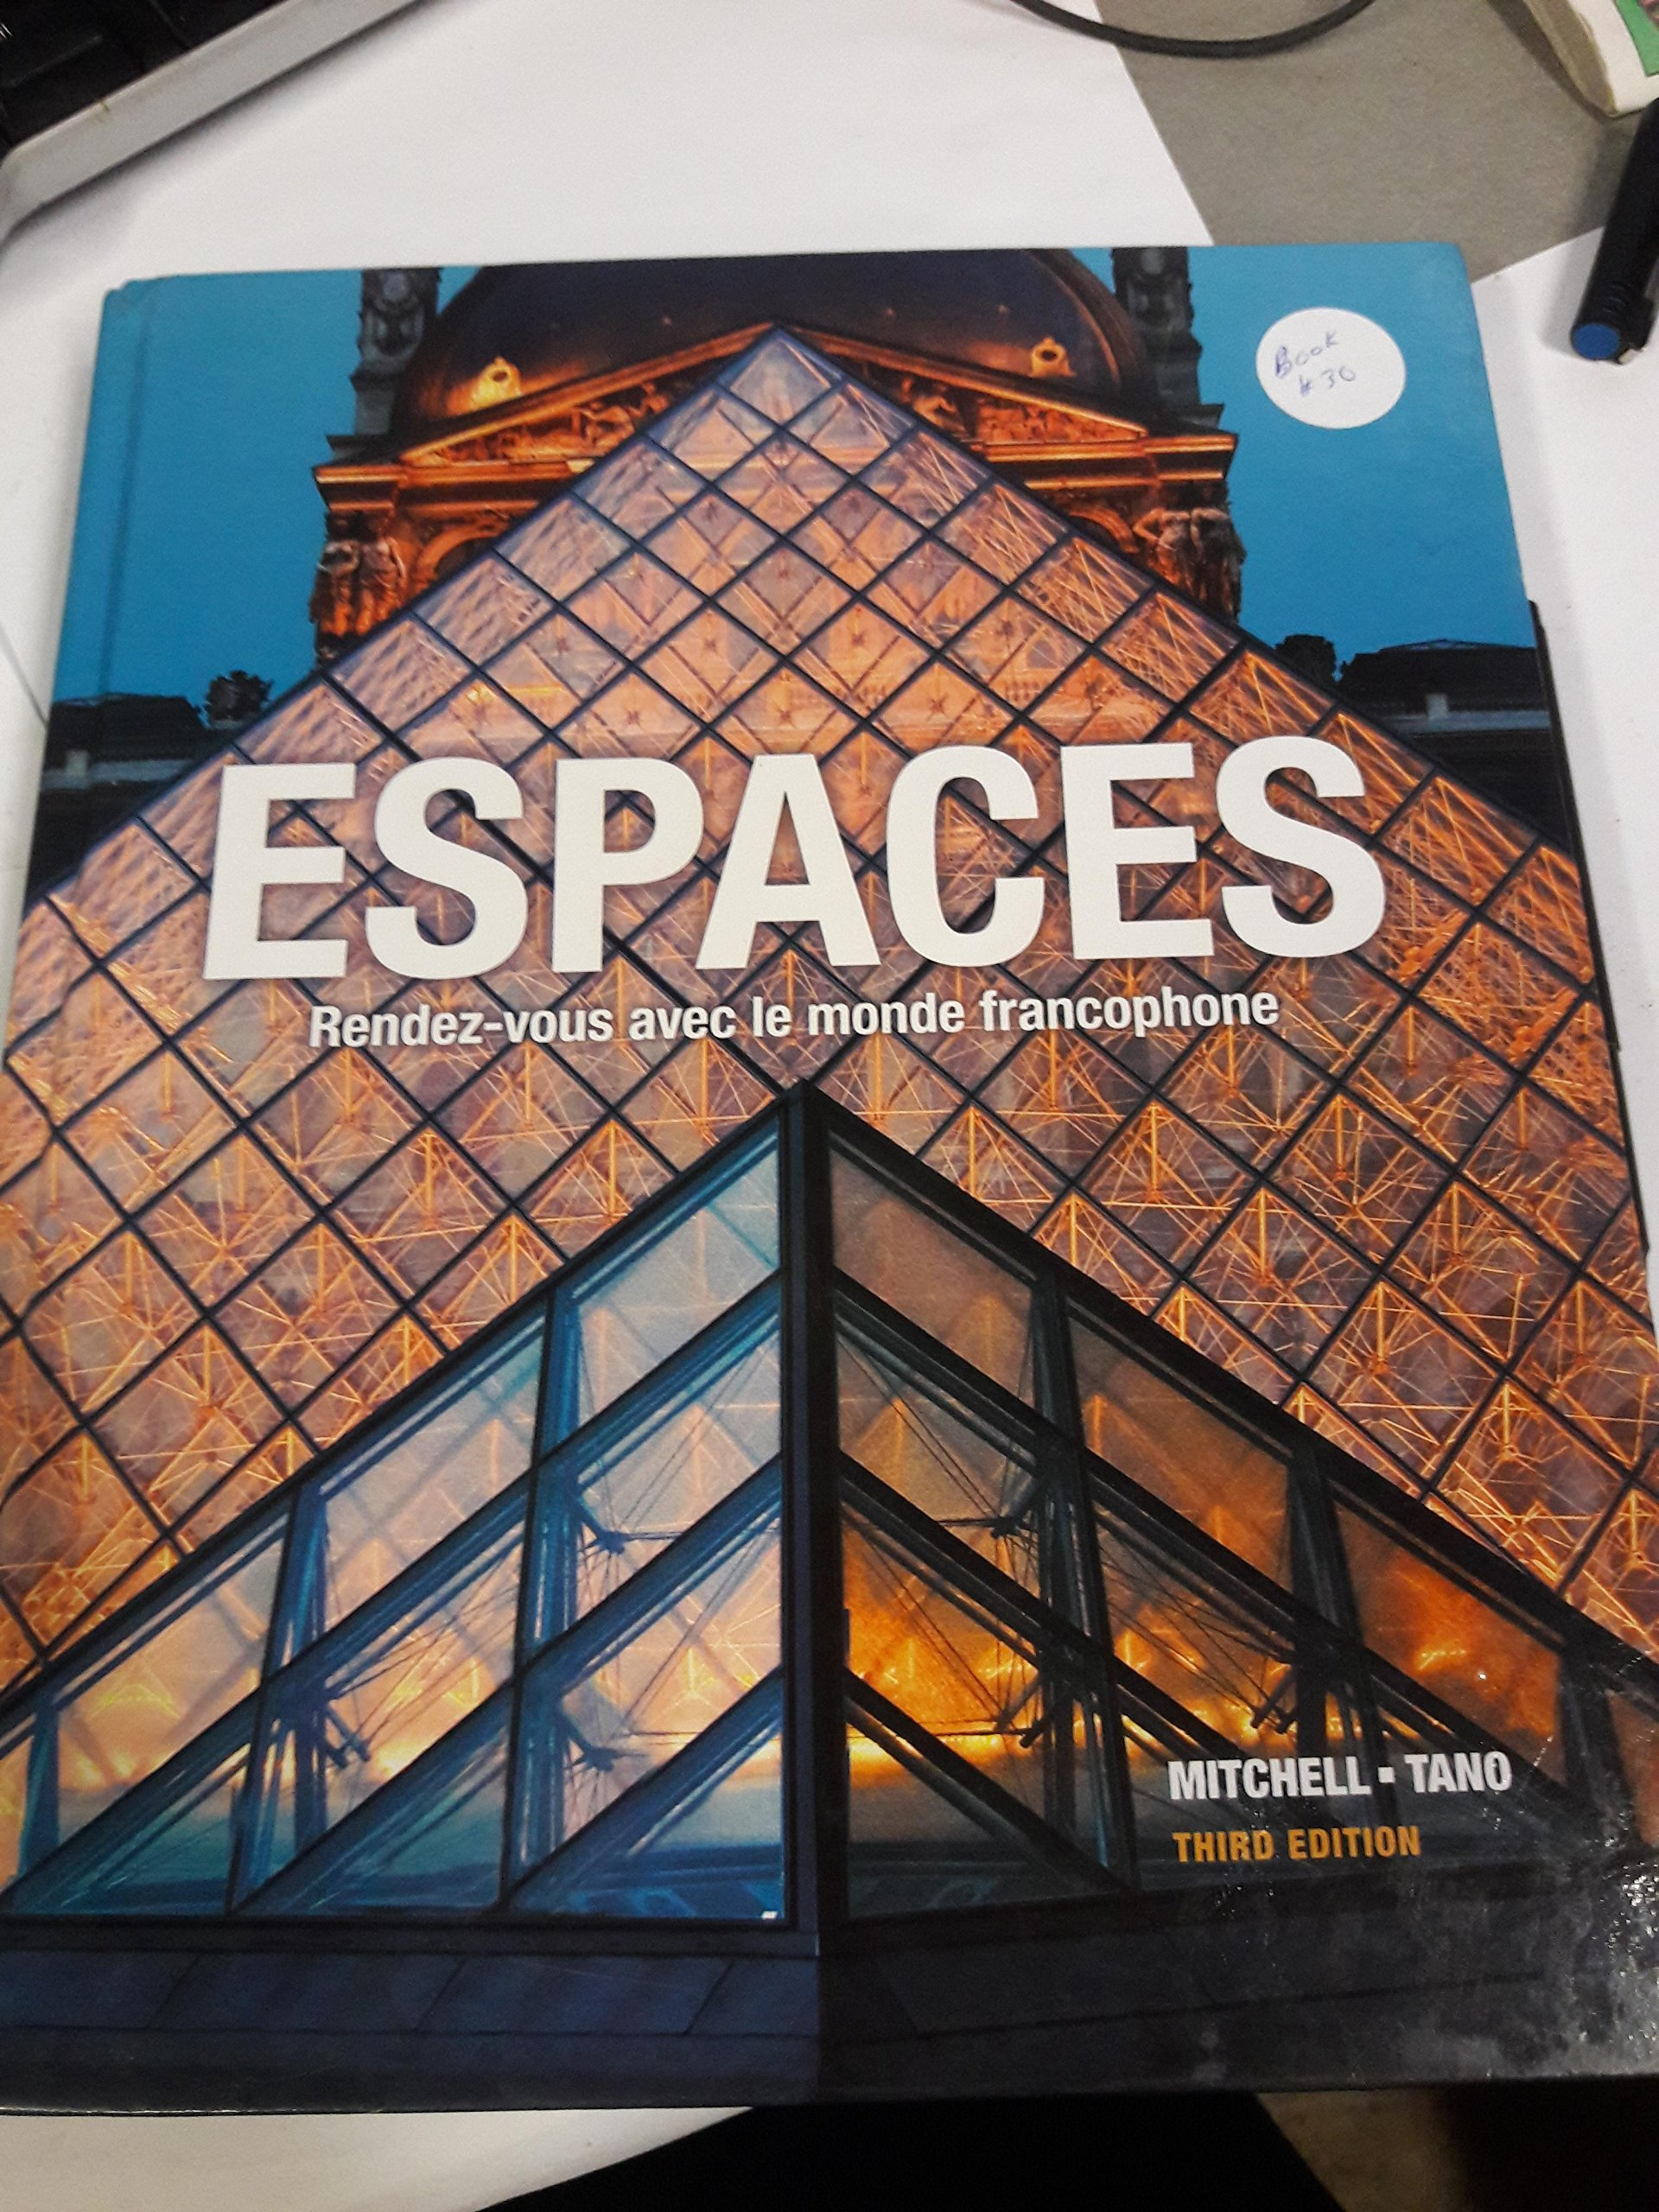 Espaces text only vhl 9781626800335 amazon books fandeluxe Choice Image